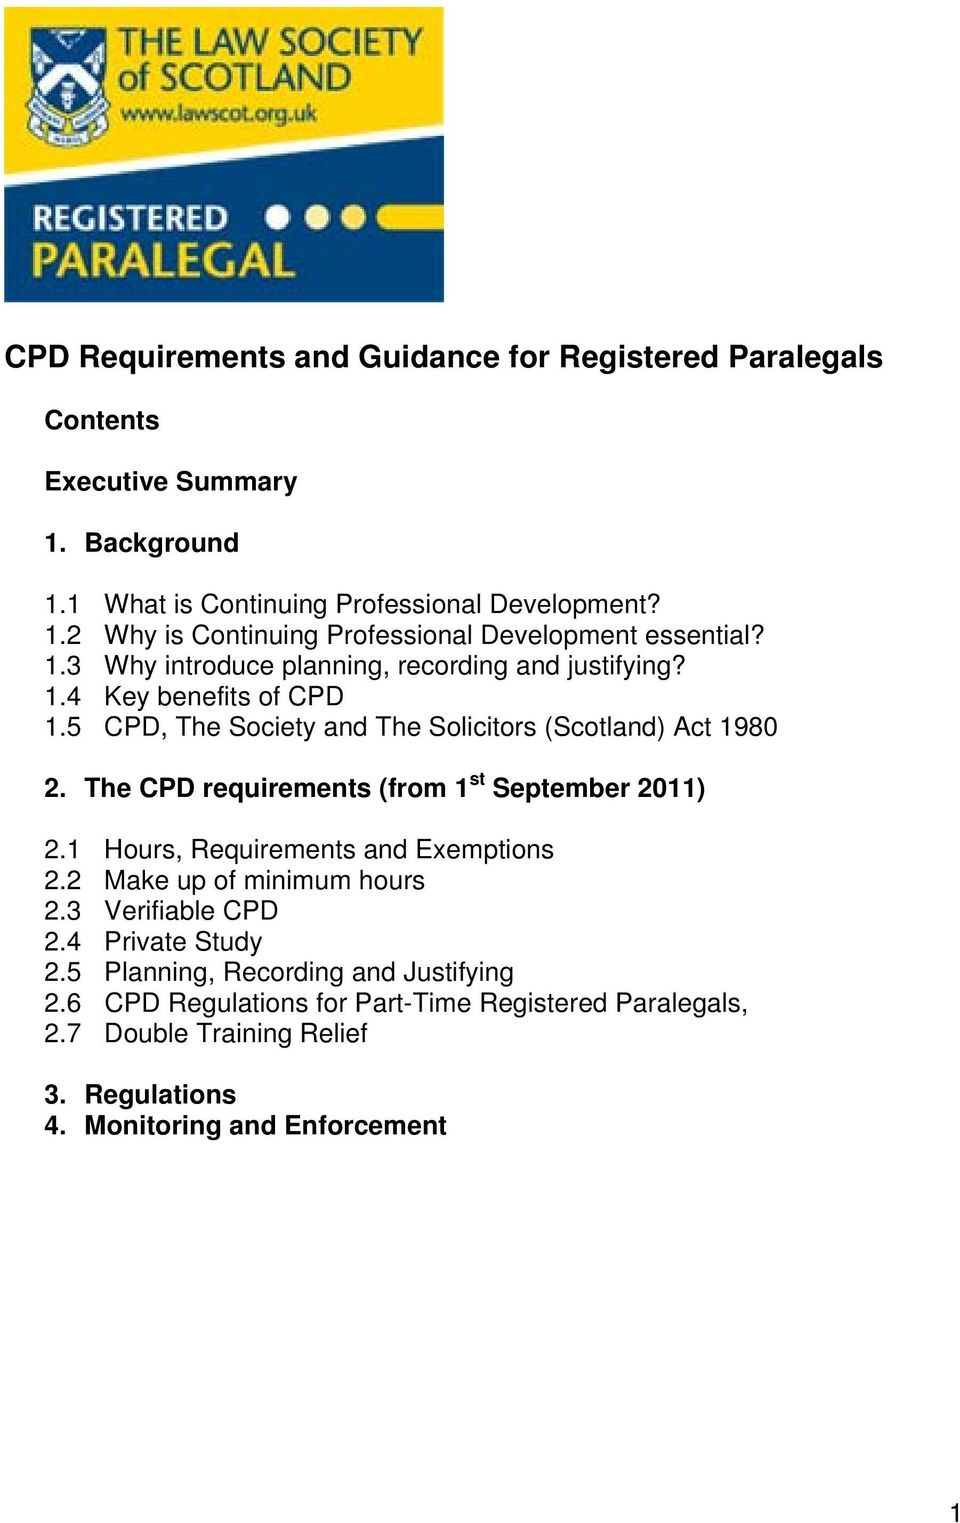 The CPD requirements (from 1 st September 2011) 2.1 Hours, Requirements and Exemptions 2.2 Make up of minimum hours 2.3 Verifiable CPD 2.4 Private Study 2.